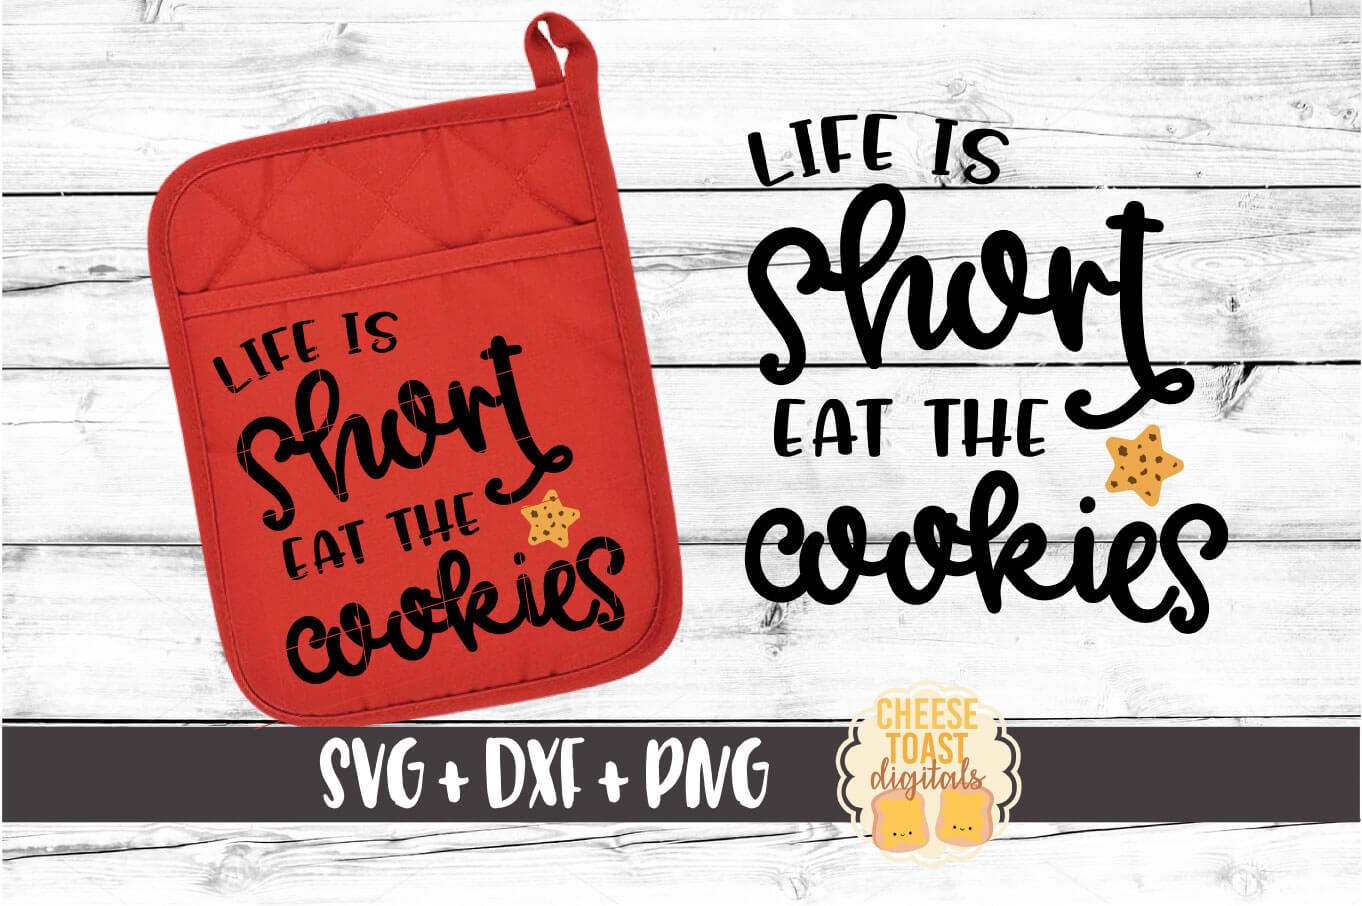 Life Is Short Eat the Cookies - Pot Holder Design